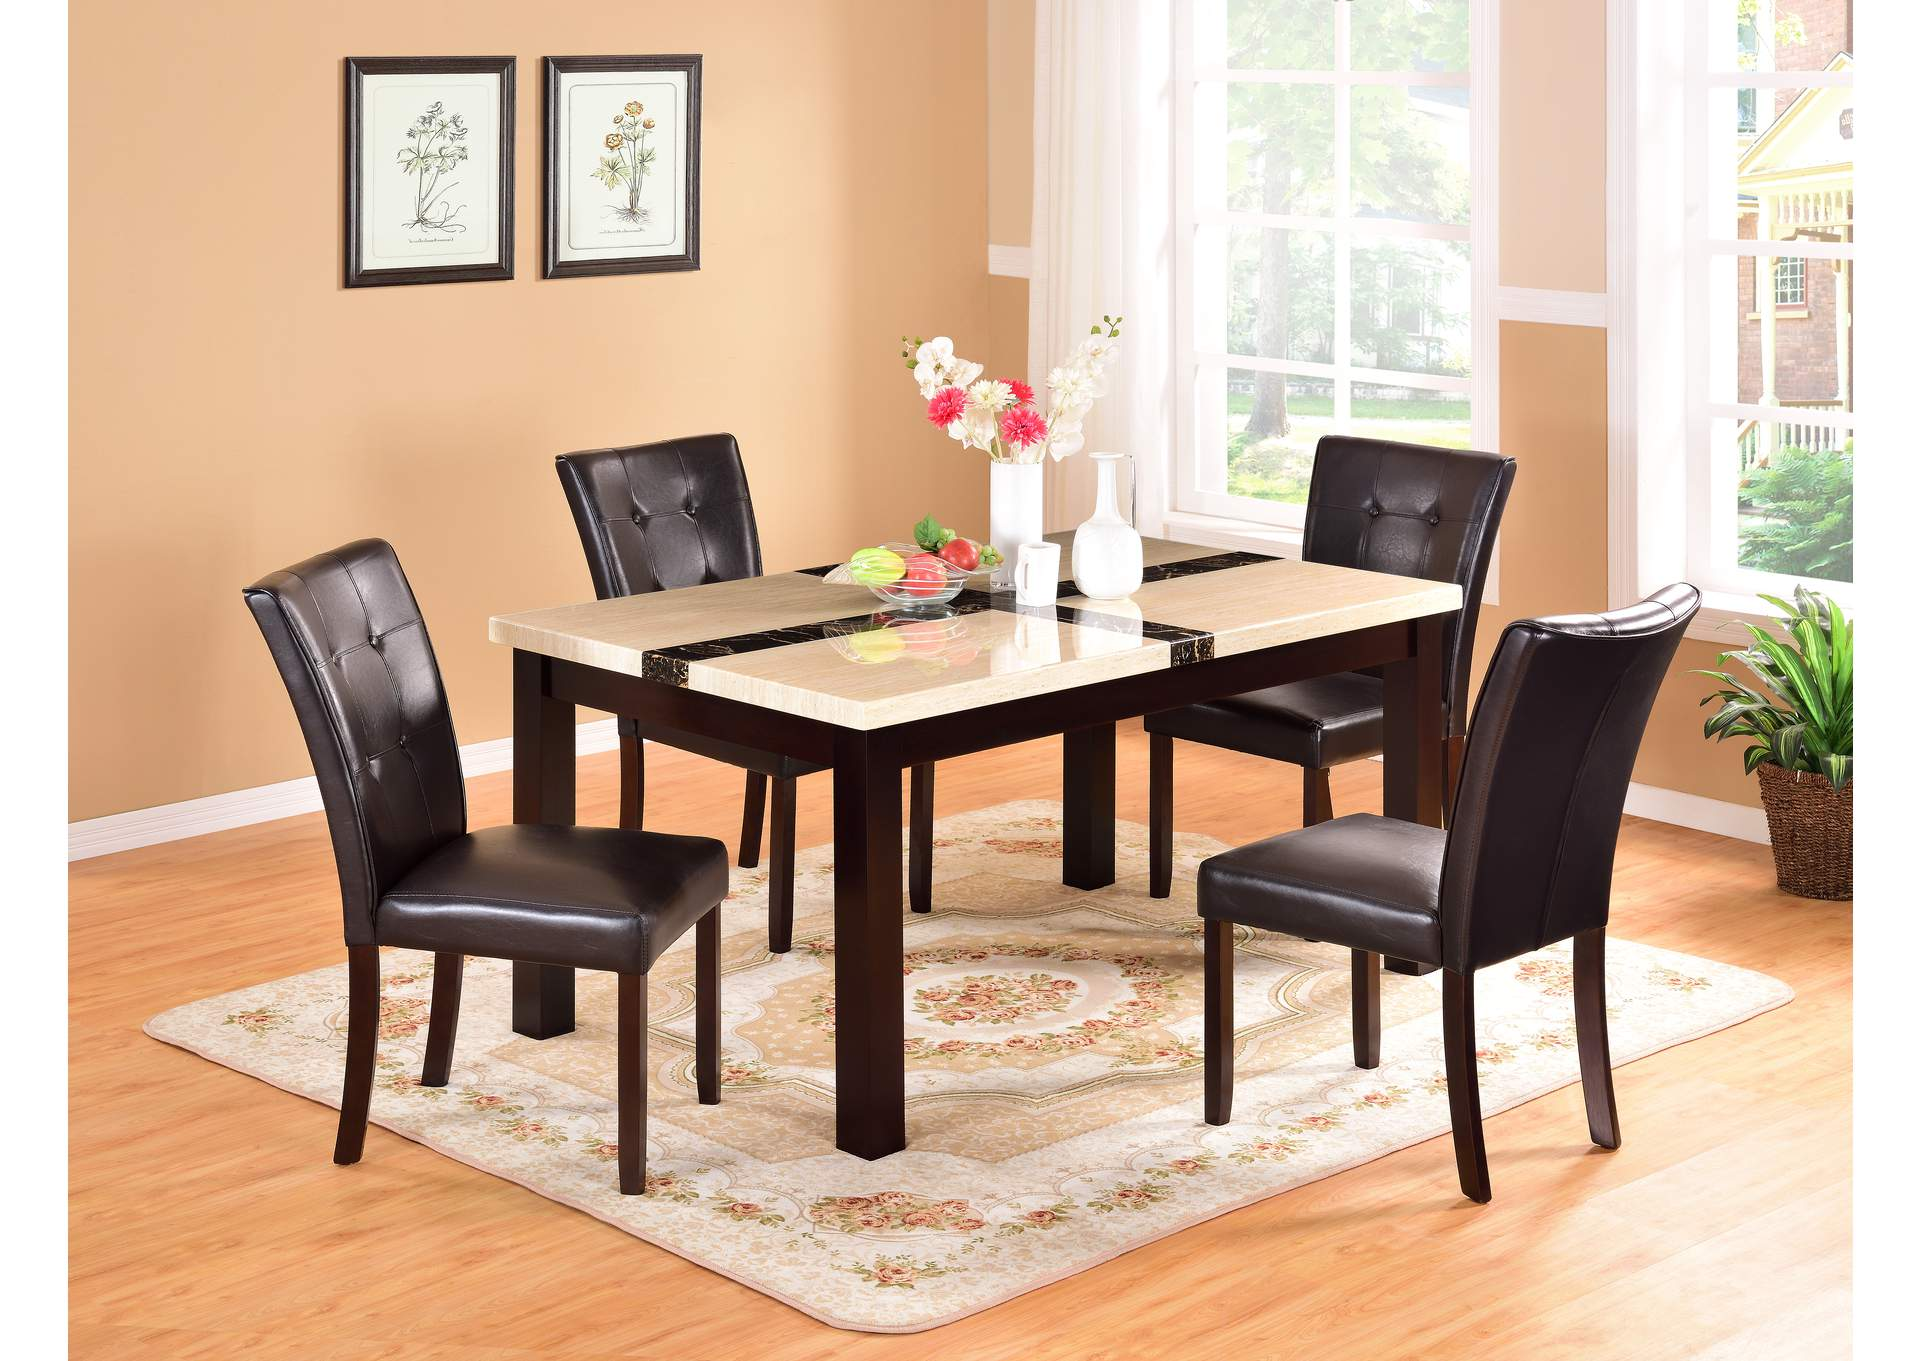 Faux Mable Dinette (Set of 5),Global Trading